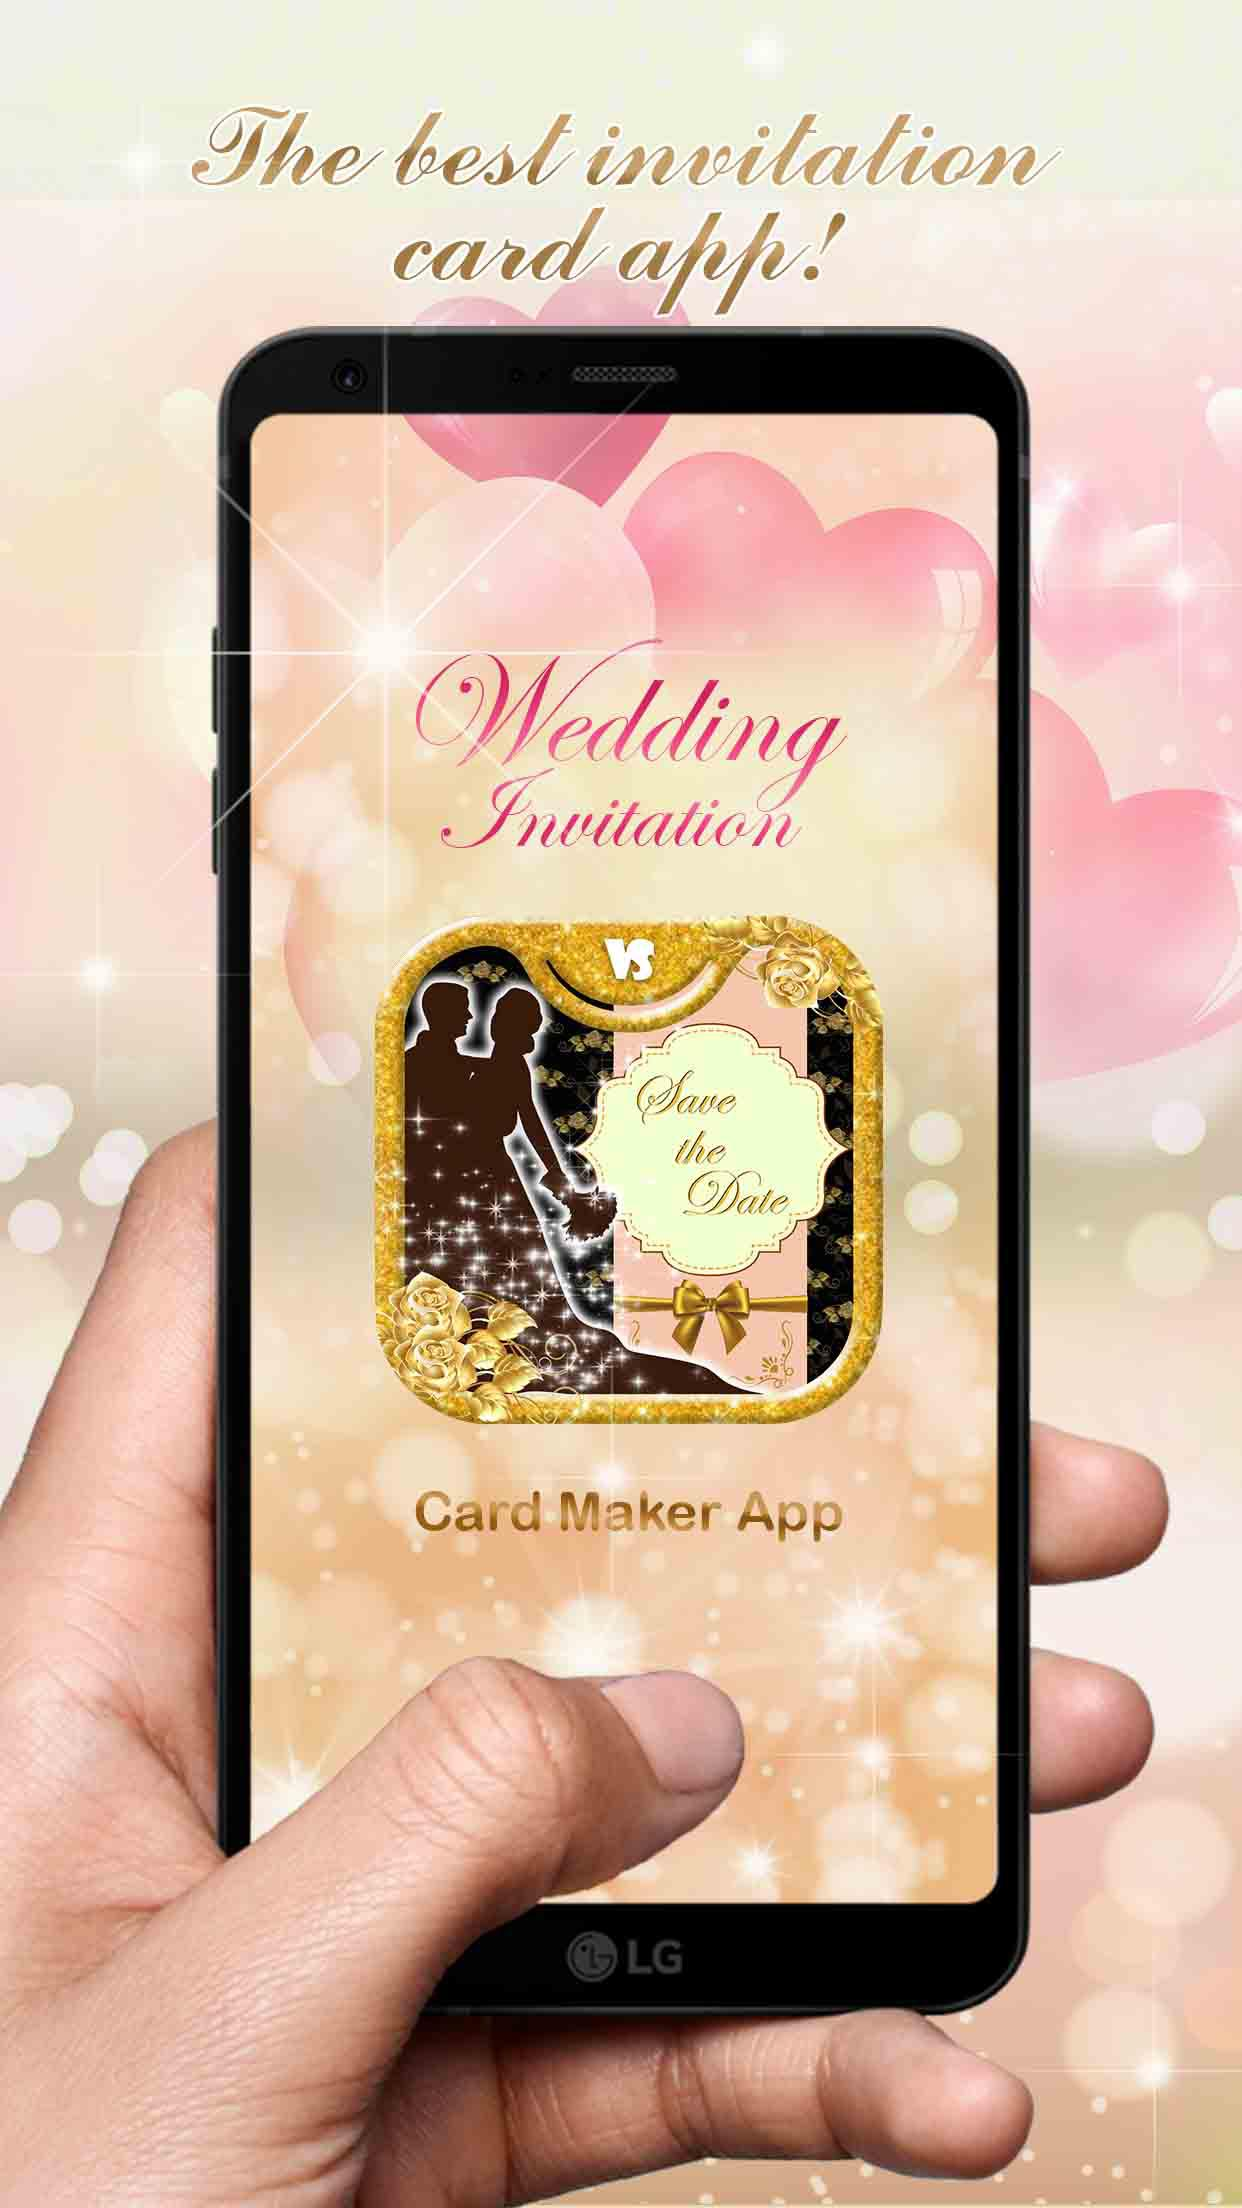 Wedding Invitation Card Maker App For Android Apk Download